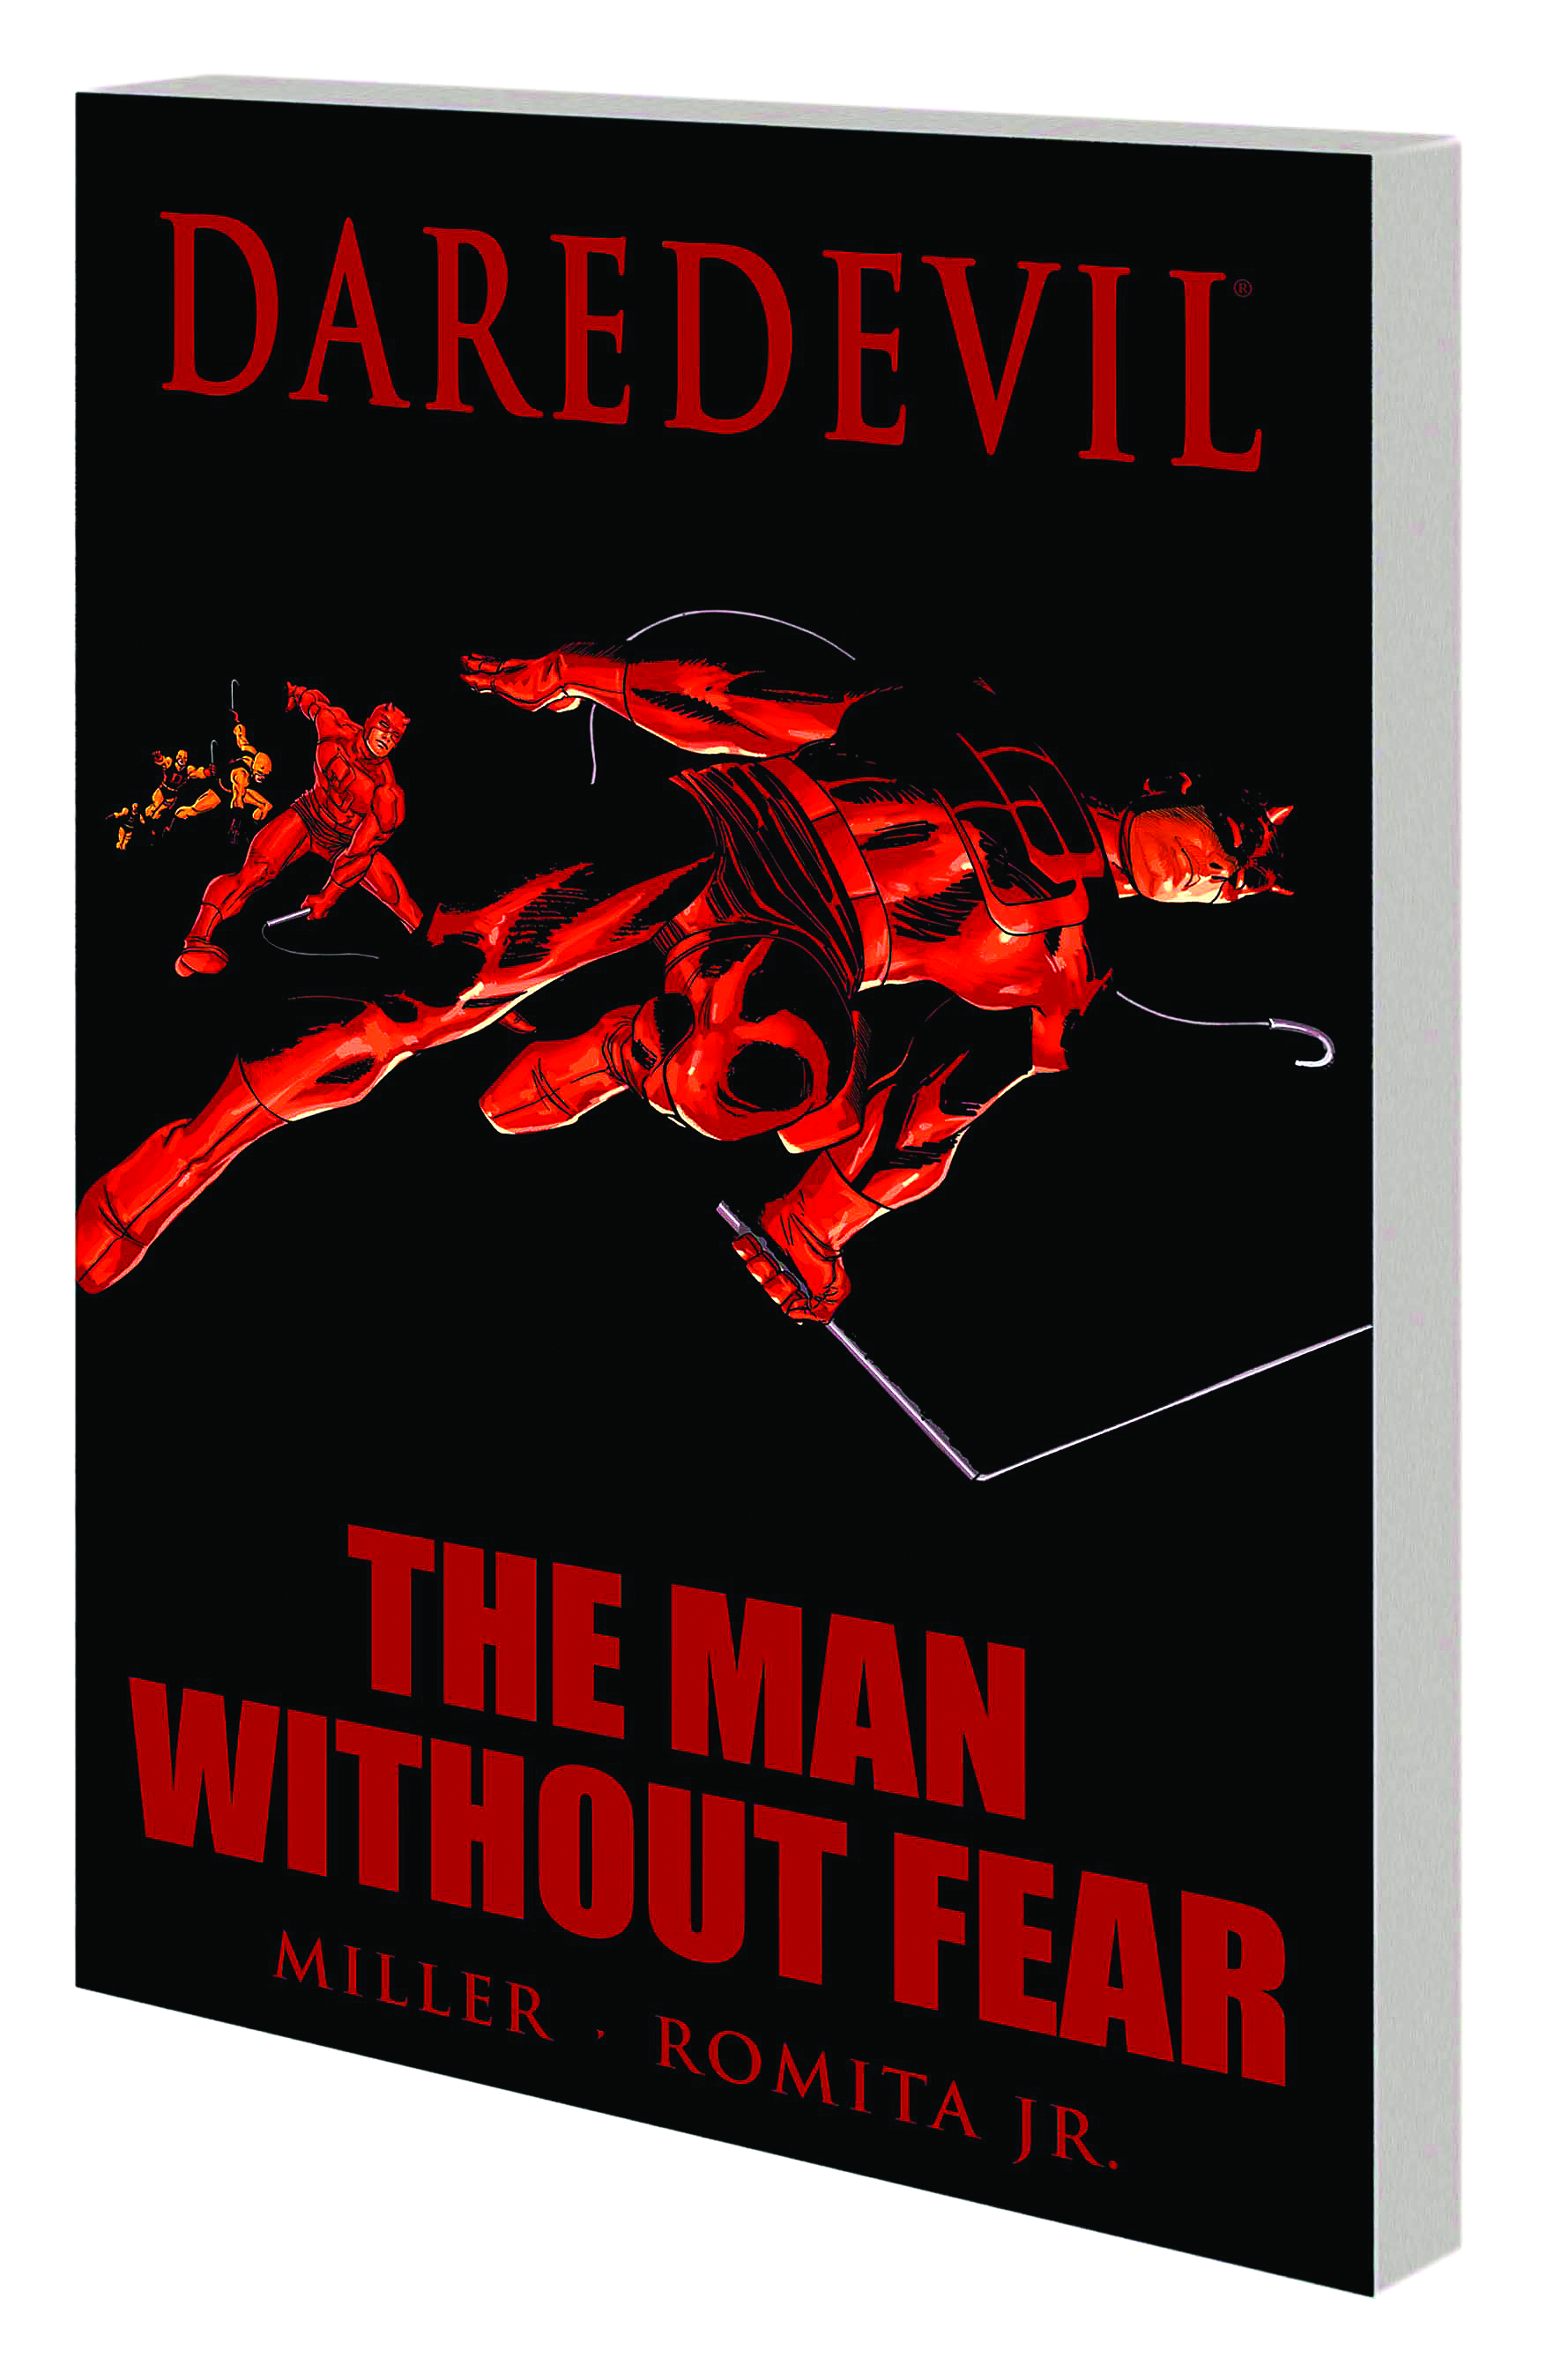 DAREDEVIL TP MAN WITHOUT FEAR